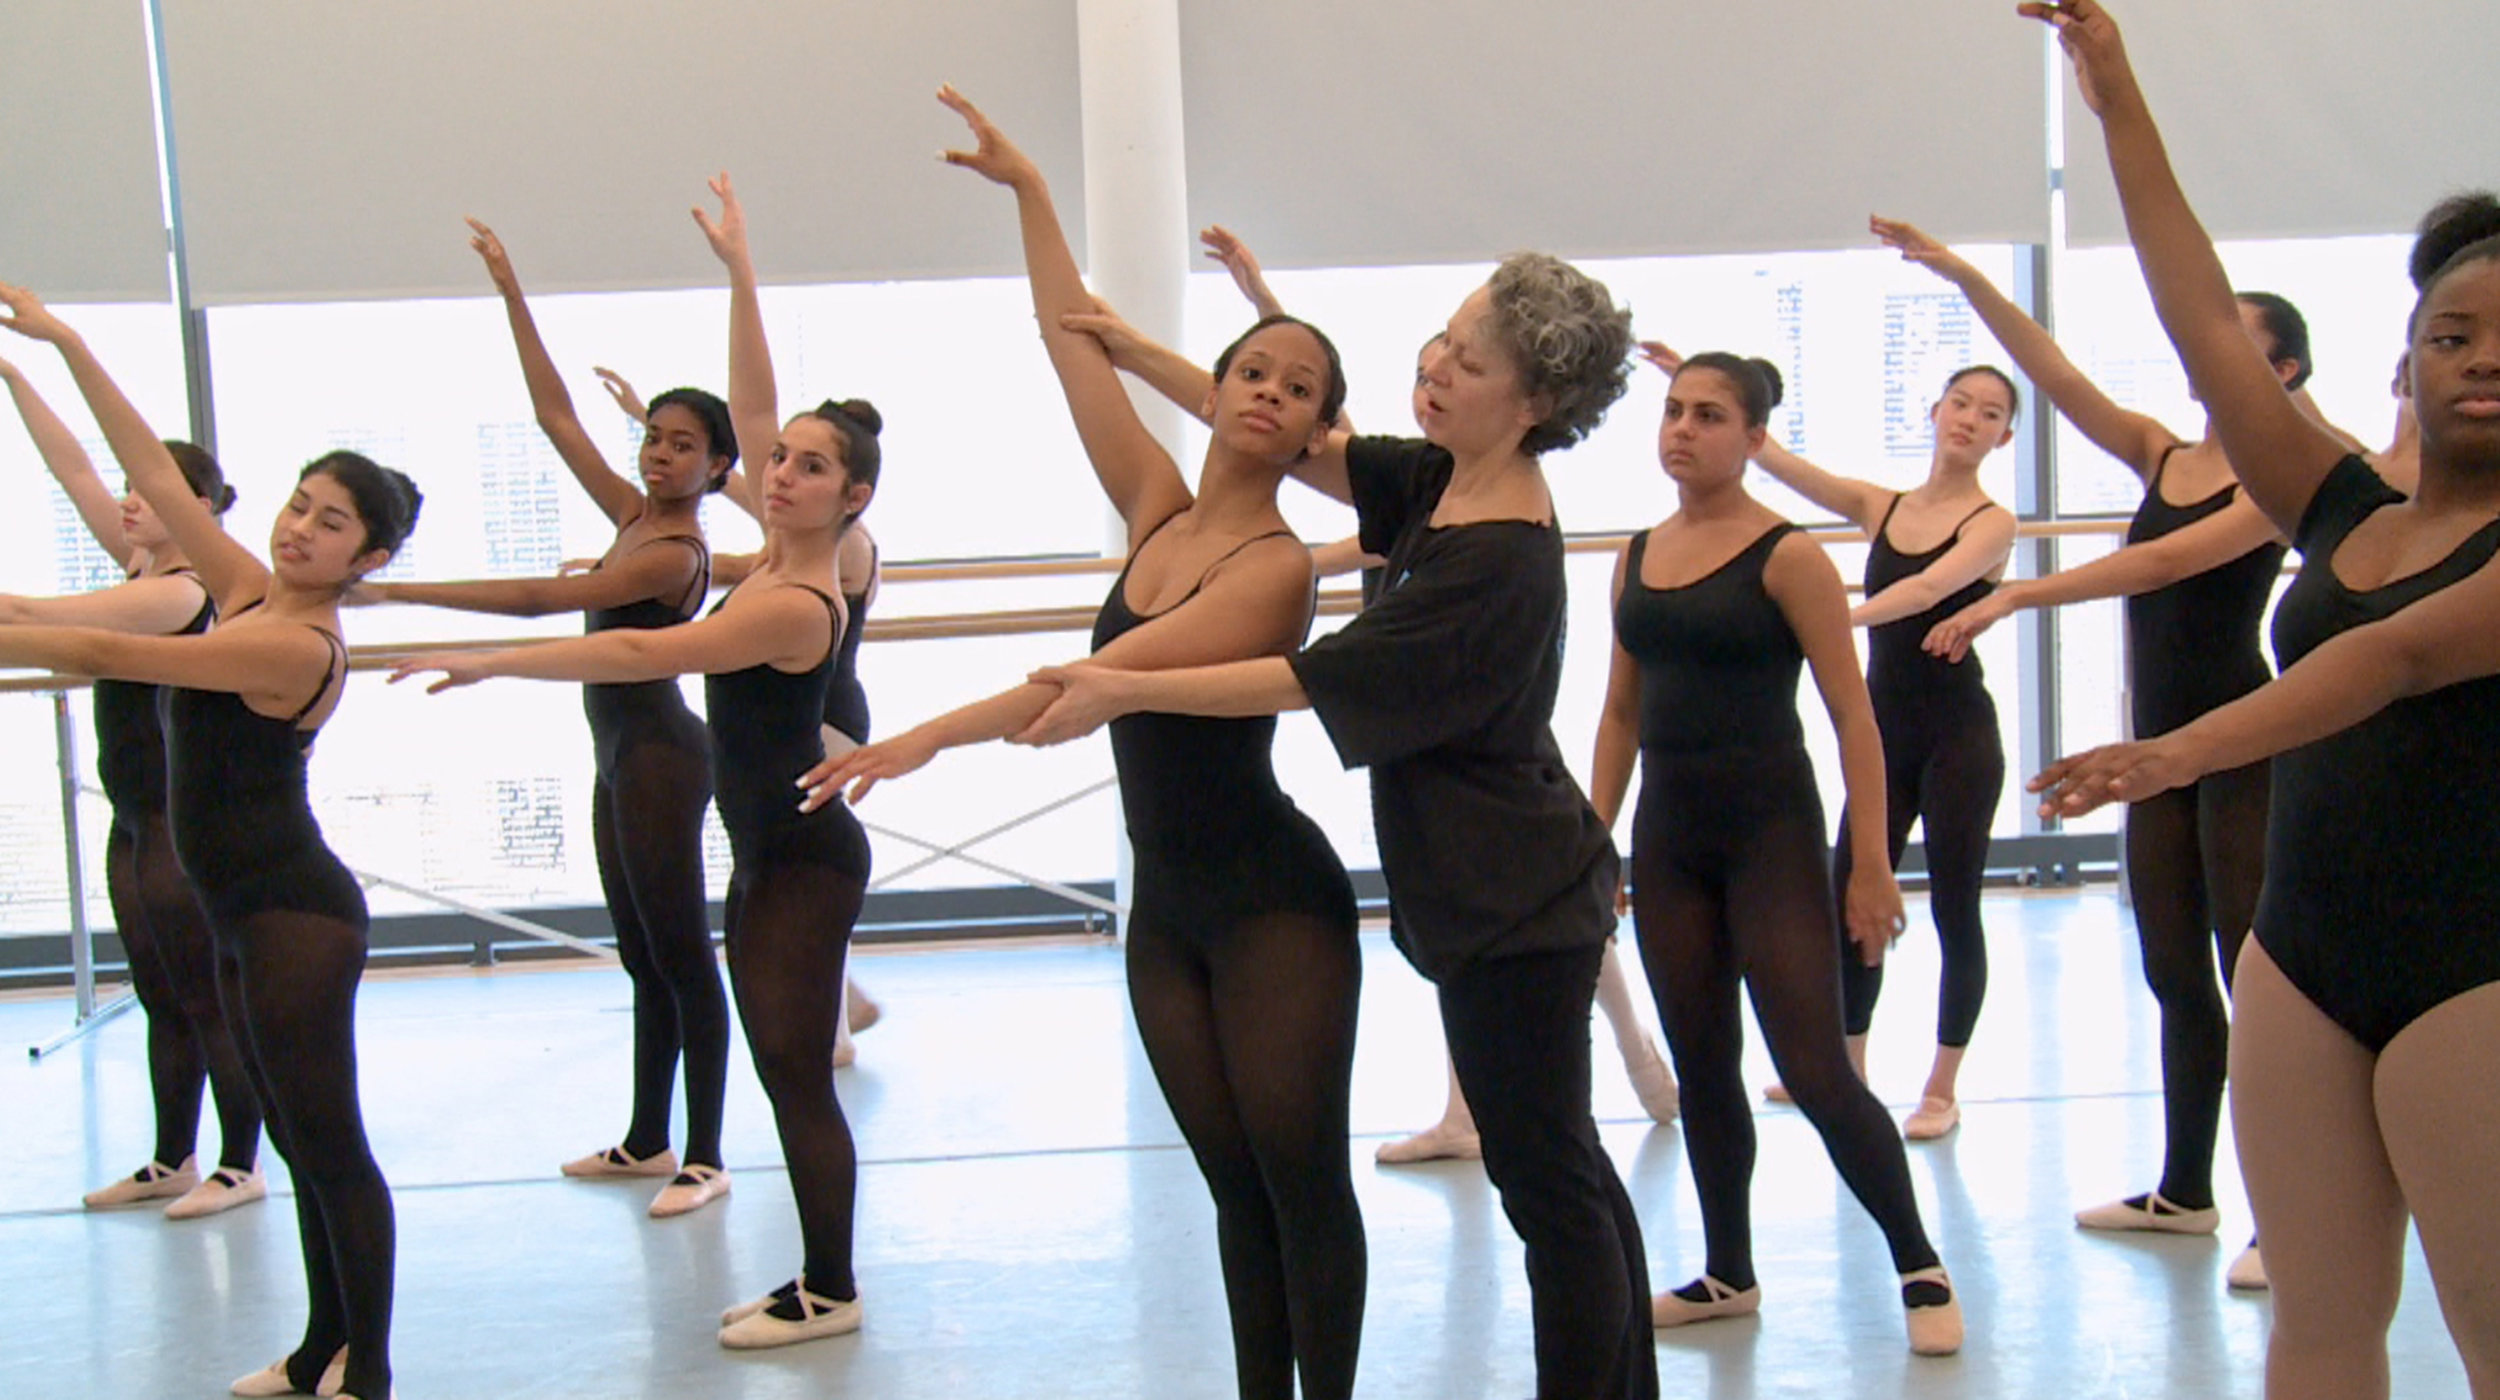 Educators in the Arnhold New Dance Teacher Support Program receive Professional Development and supports that will ultimately lead to transformative system-wide improvements in NYC public school dance education.